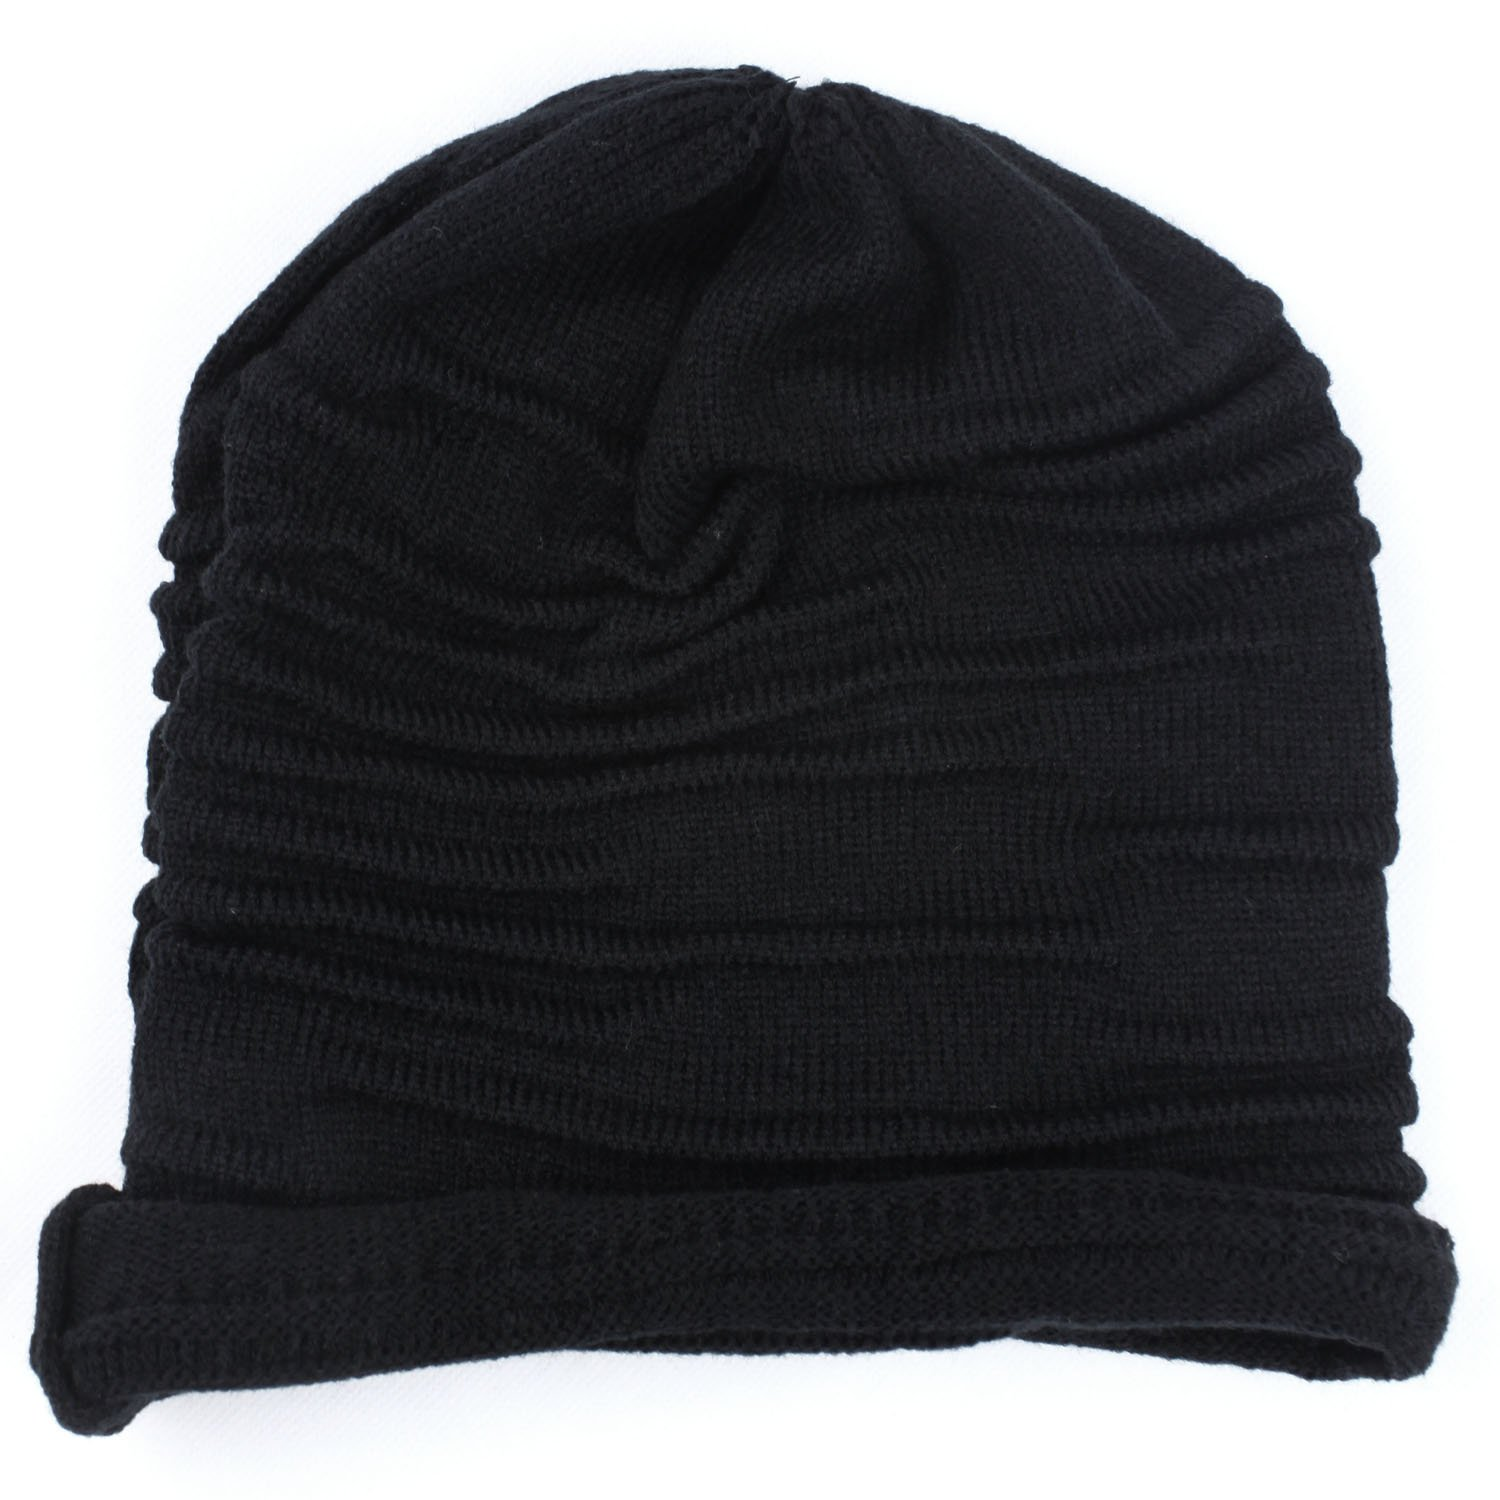 New Winter Unisex Plicate Baggy Beanie Knit Crochet Ski Hat Oversized Slouch Cap Black high quality black new for olm 080d0838 fpc zjx 5j 8 inch touch screen digitizer glass sensor replacement parts